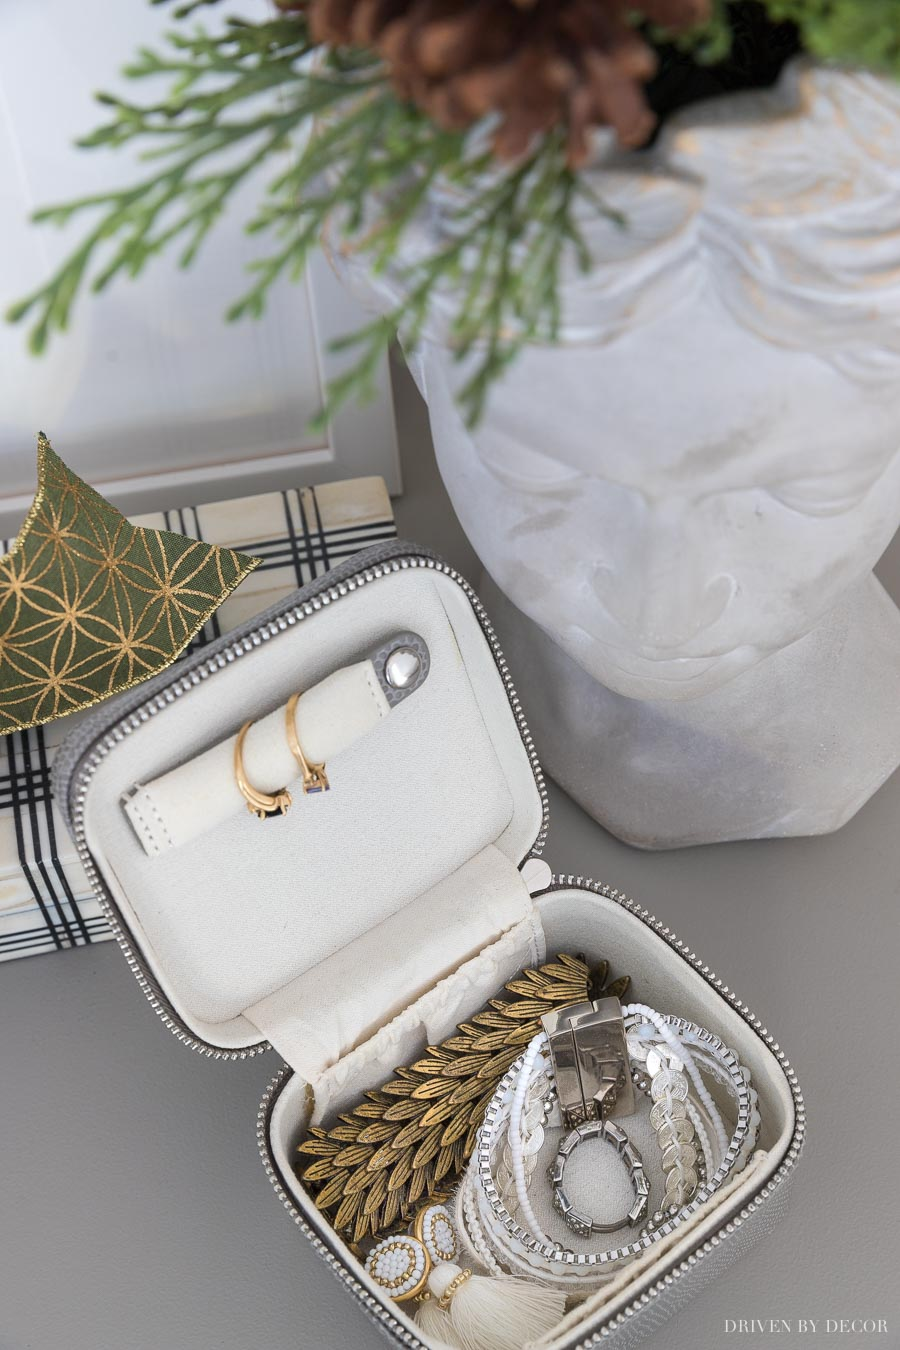 This jewelry travel case is at the top of my Christmas wish list - love it!